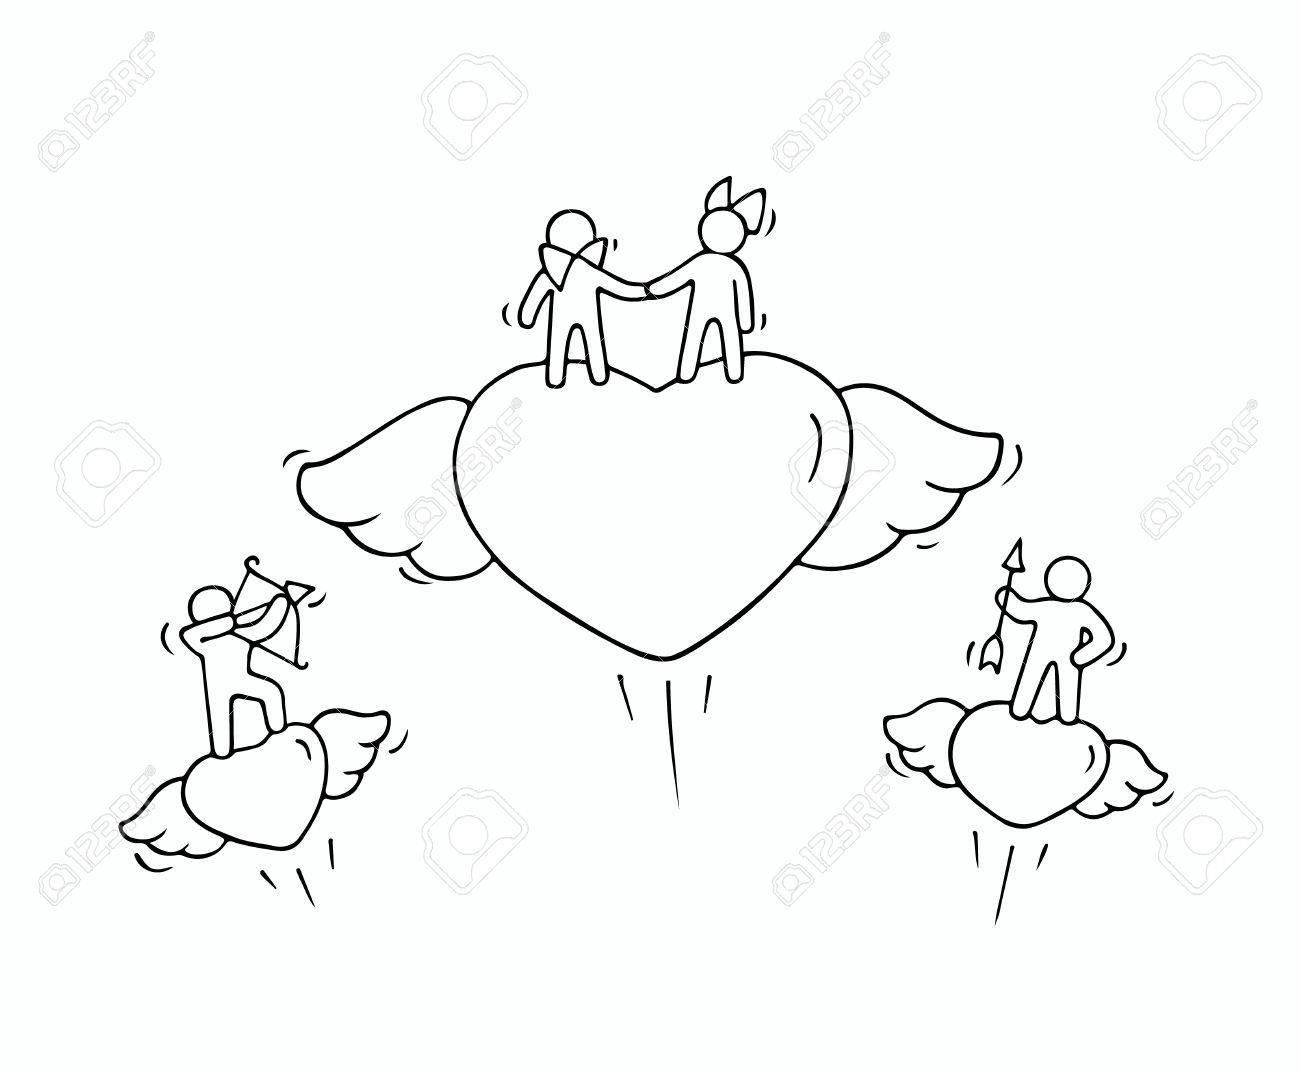 Sketch of flying hearts with cute little people doodle cute miniature romantic scene about love